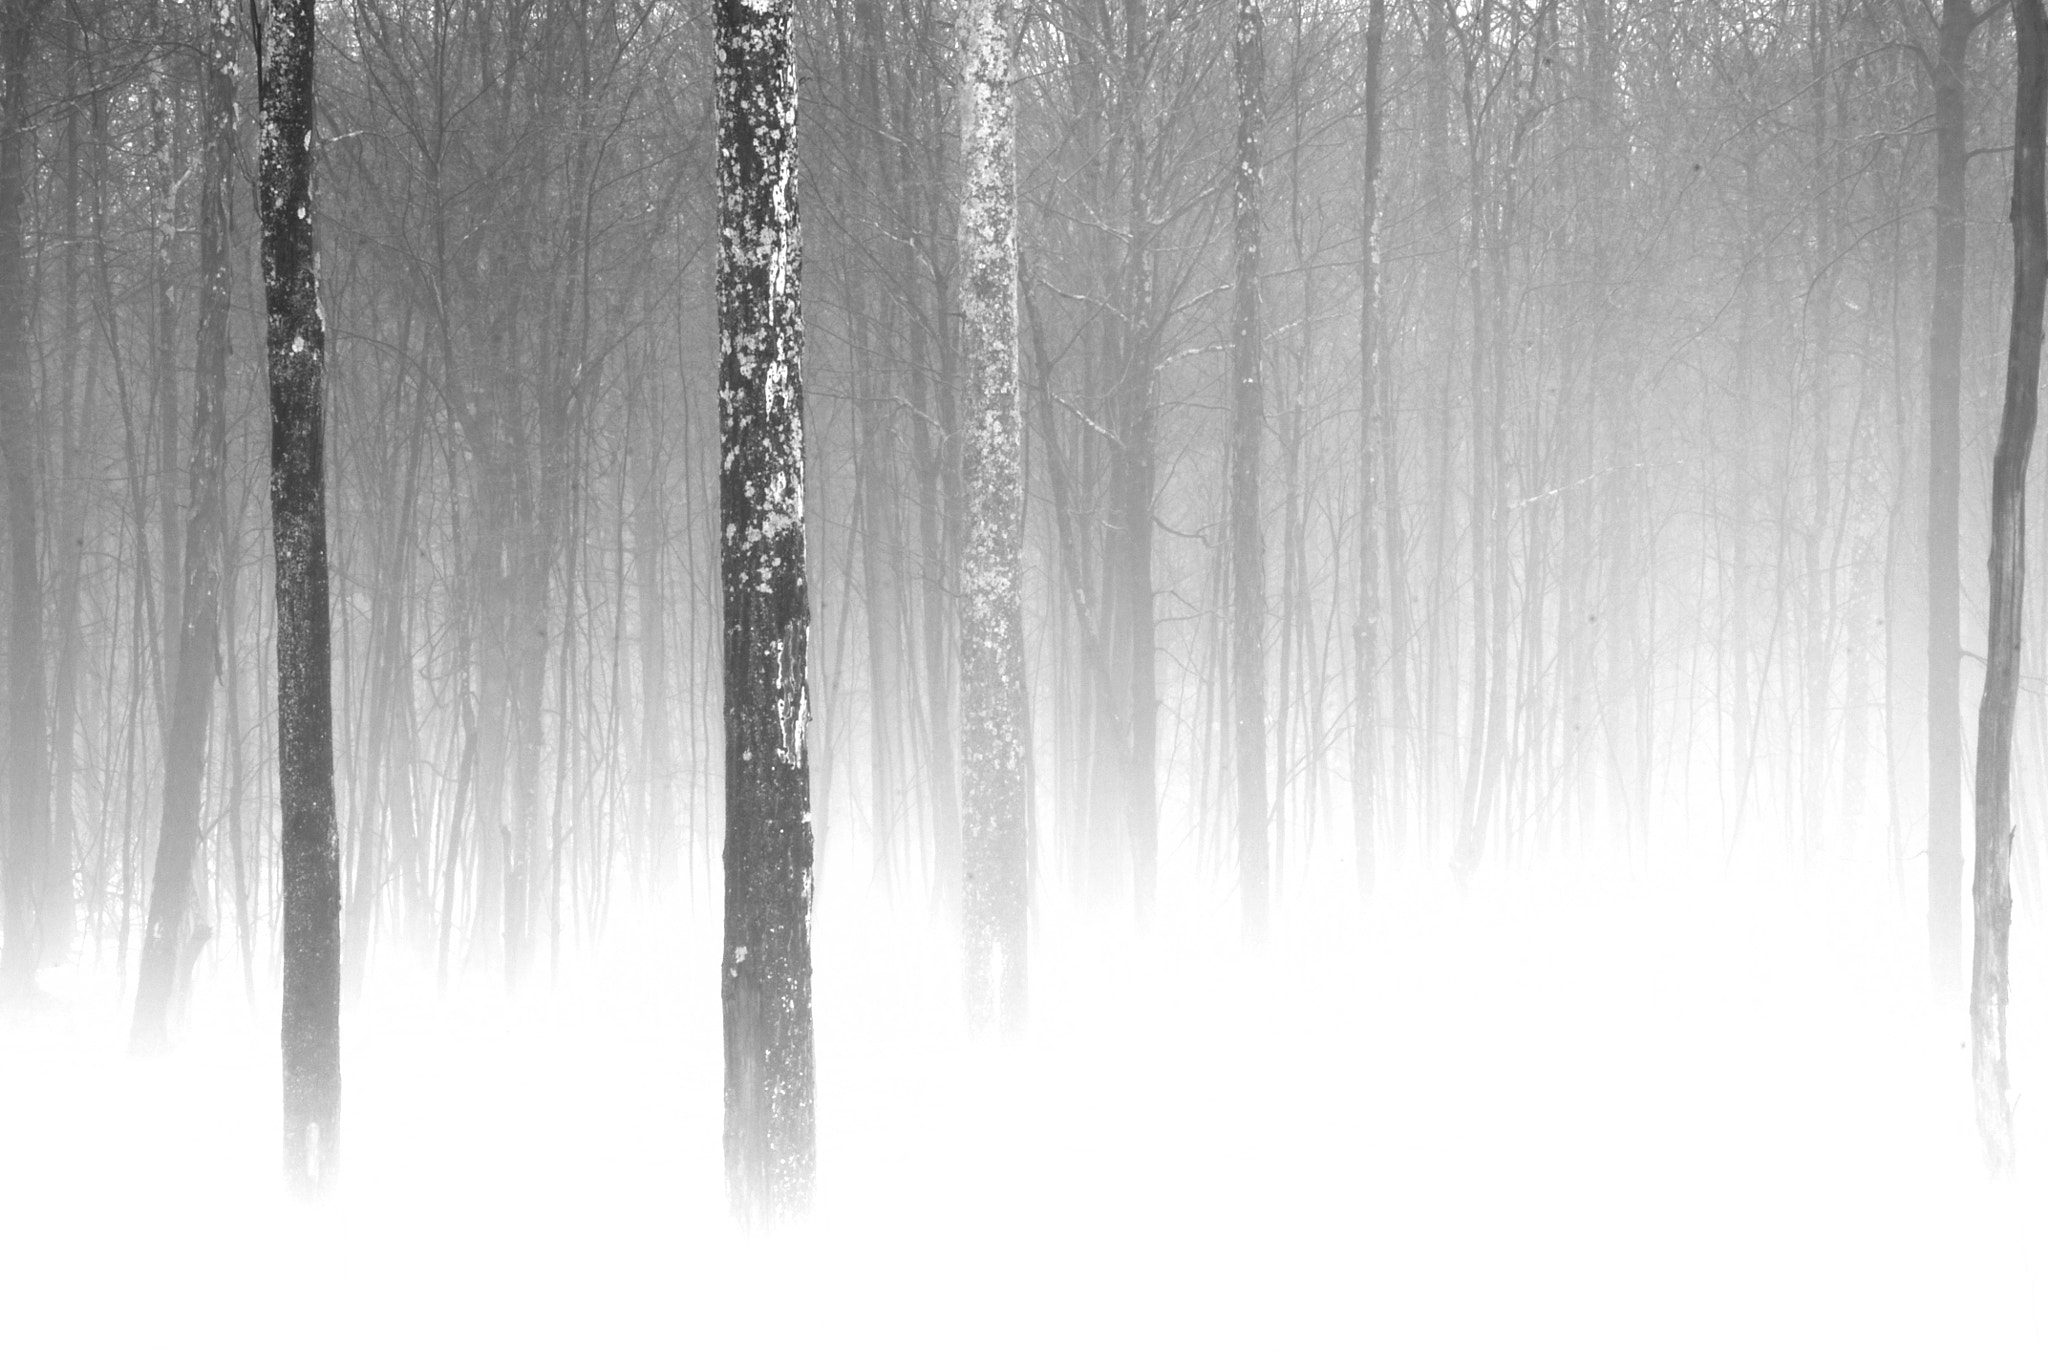 Photograph Trees in Winter Mist by Michael Neil O'Donnell on 500px